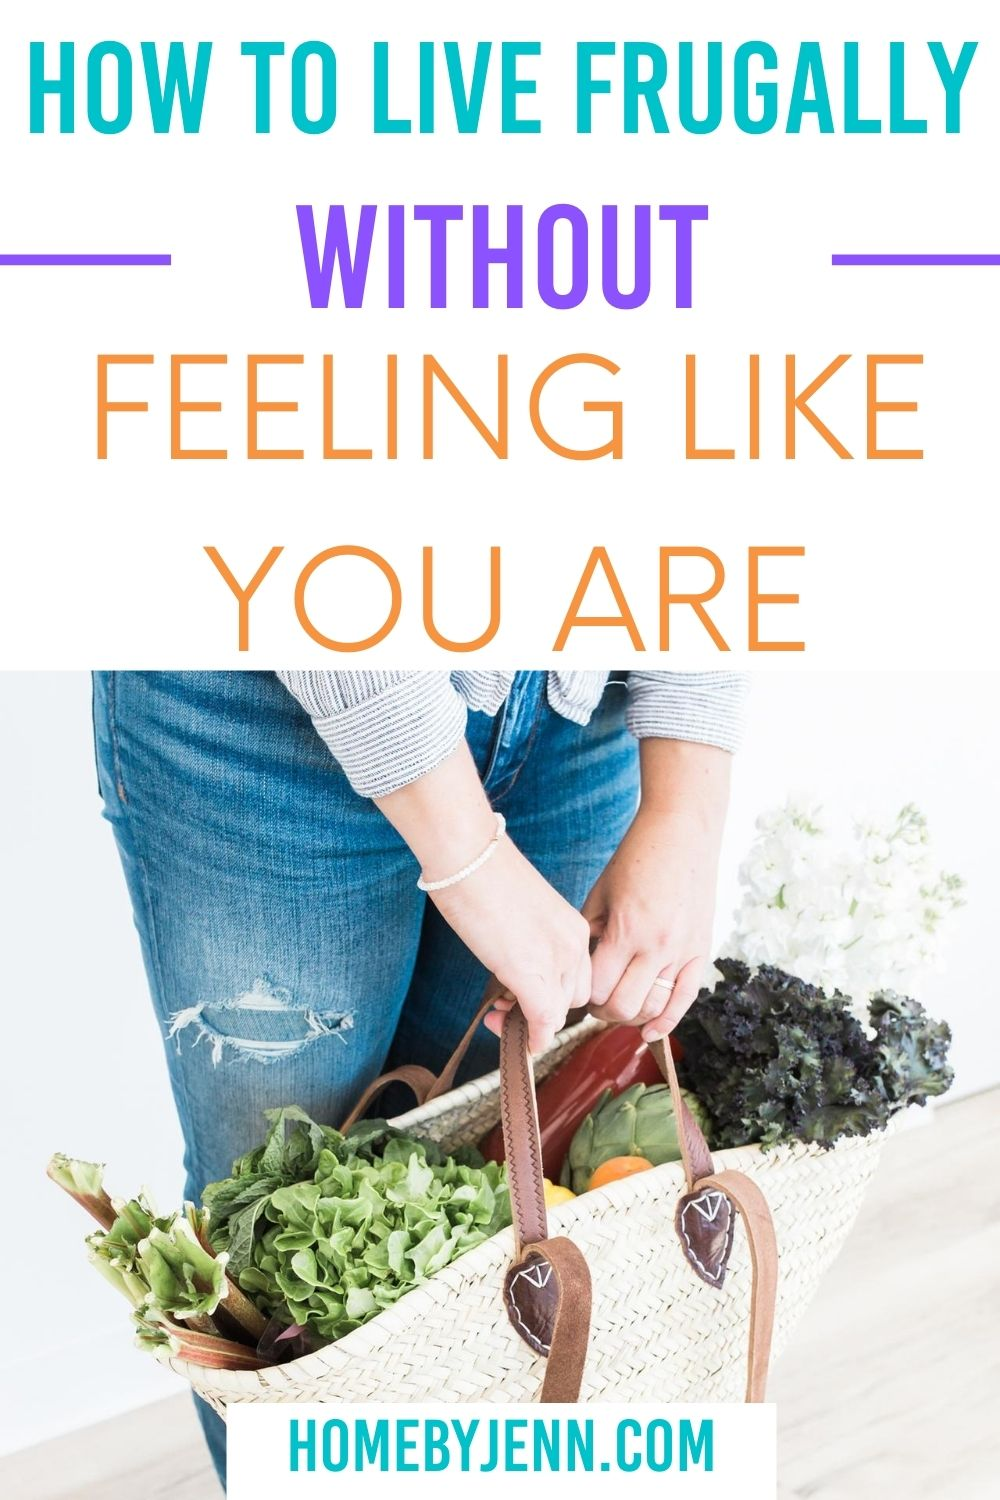 If you are tired of feeling like you are living frugally and want to enjoy some of the finer things in life, then you need this post. Enjoy living a budget friendly life while sticking to your budget and your frugal ways. #budget #frugal #livingonabudget #frugaltips #budgettips  via @homebyjenn